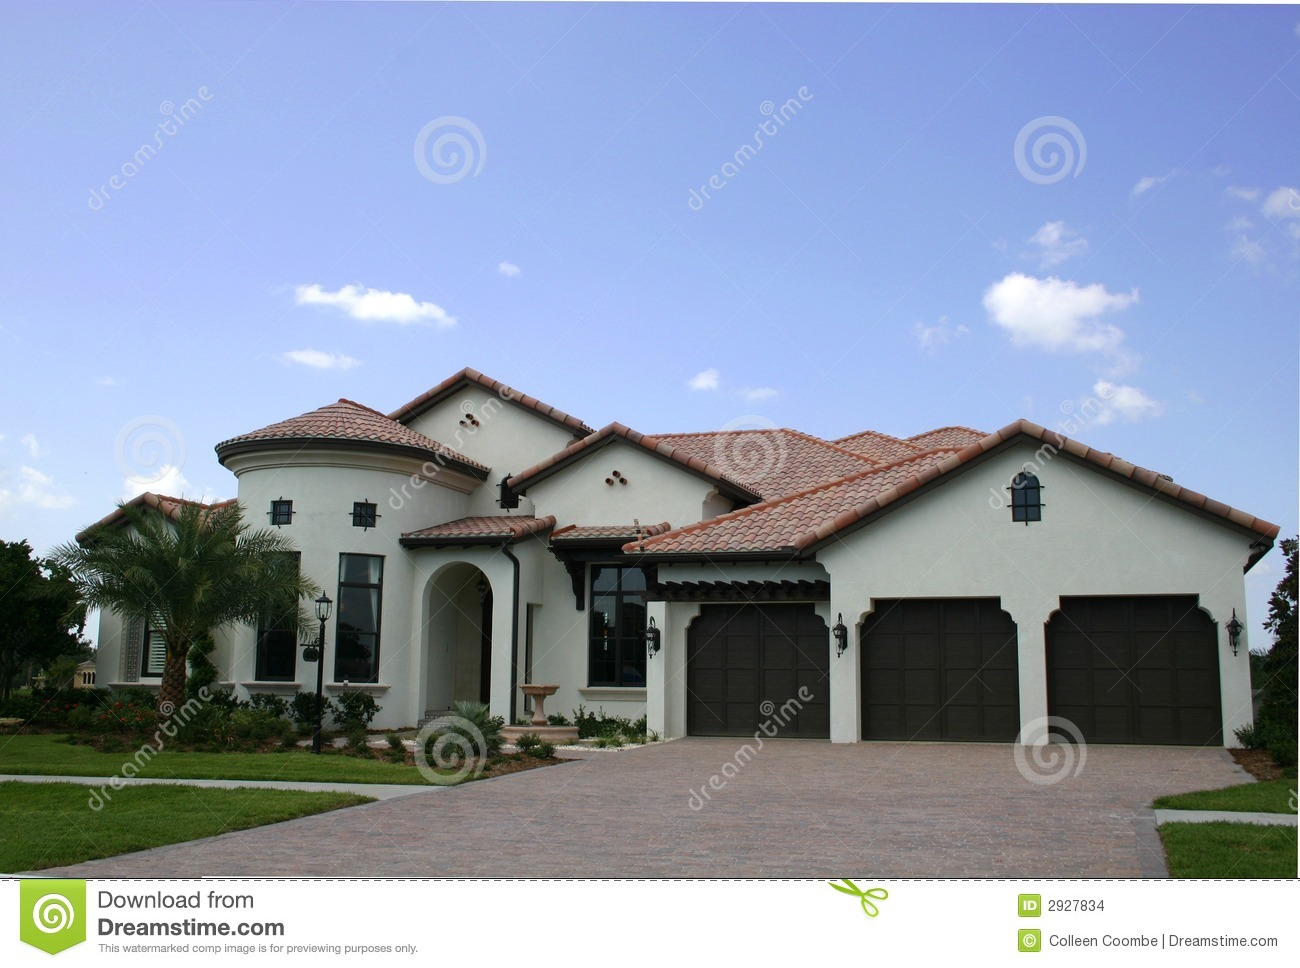 Spanish-type Home Stock Images - Image: 2927834